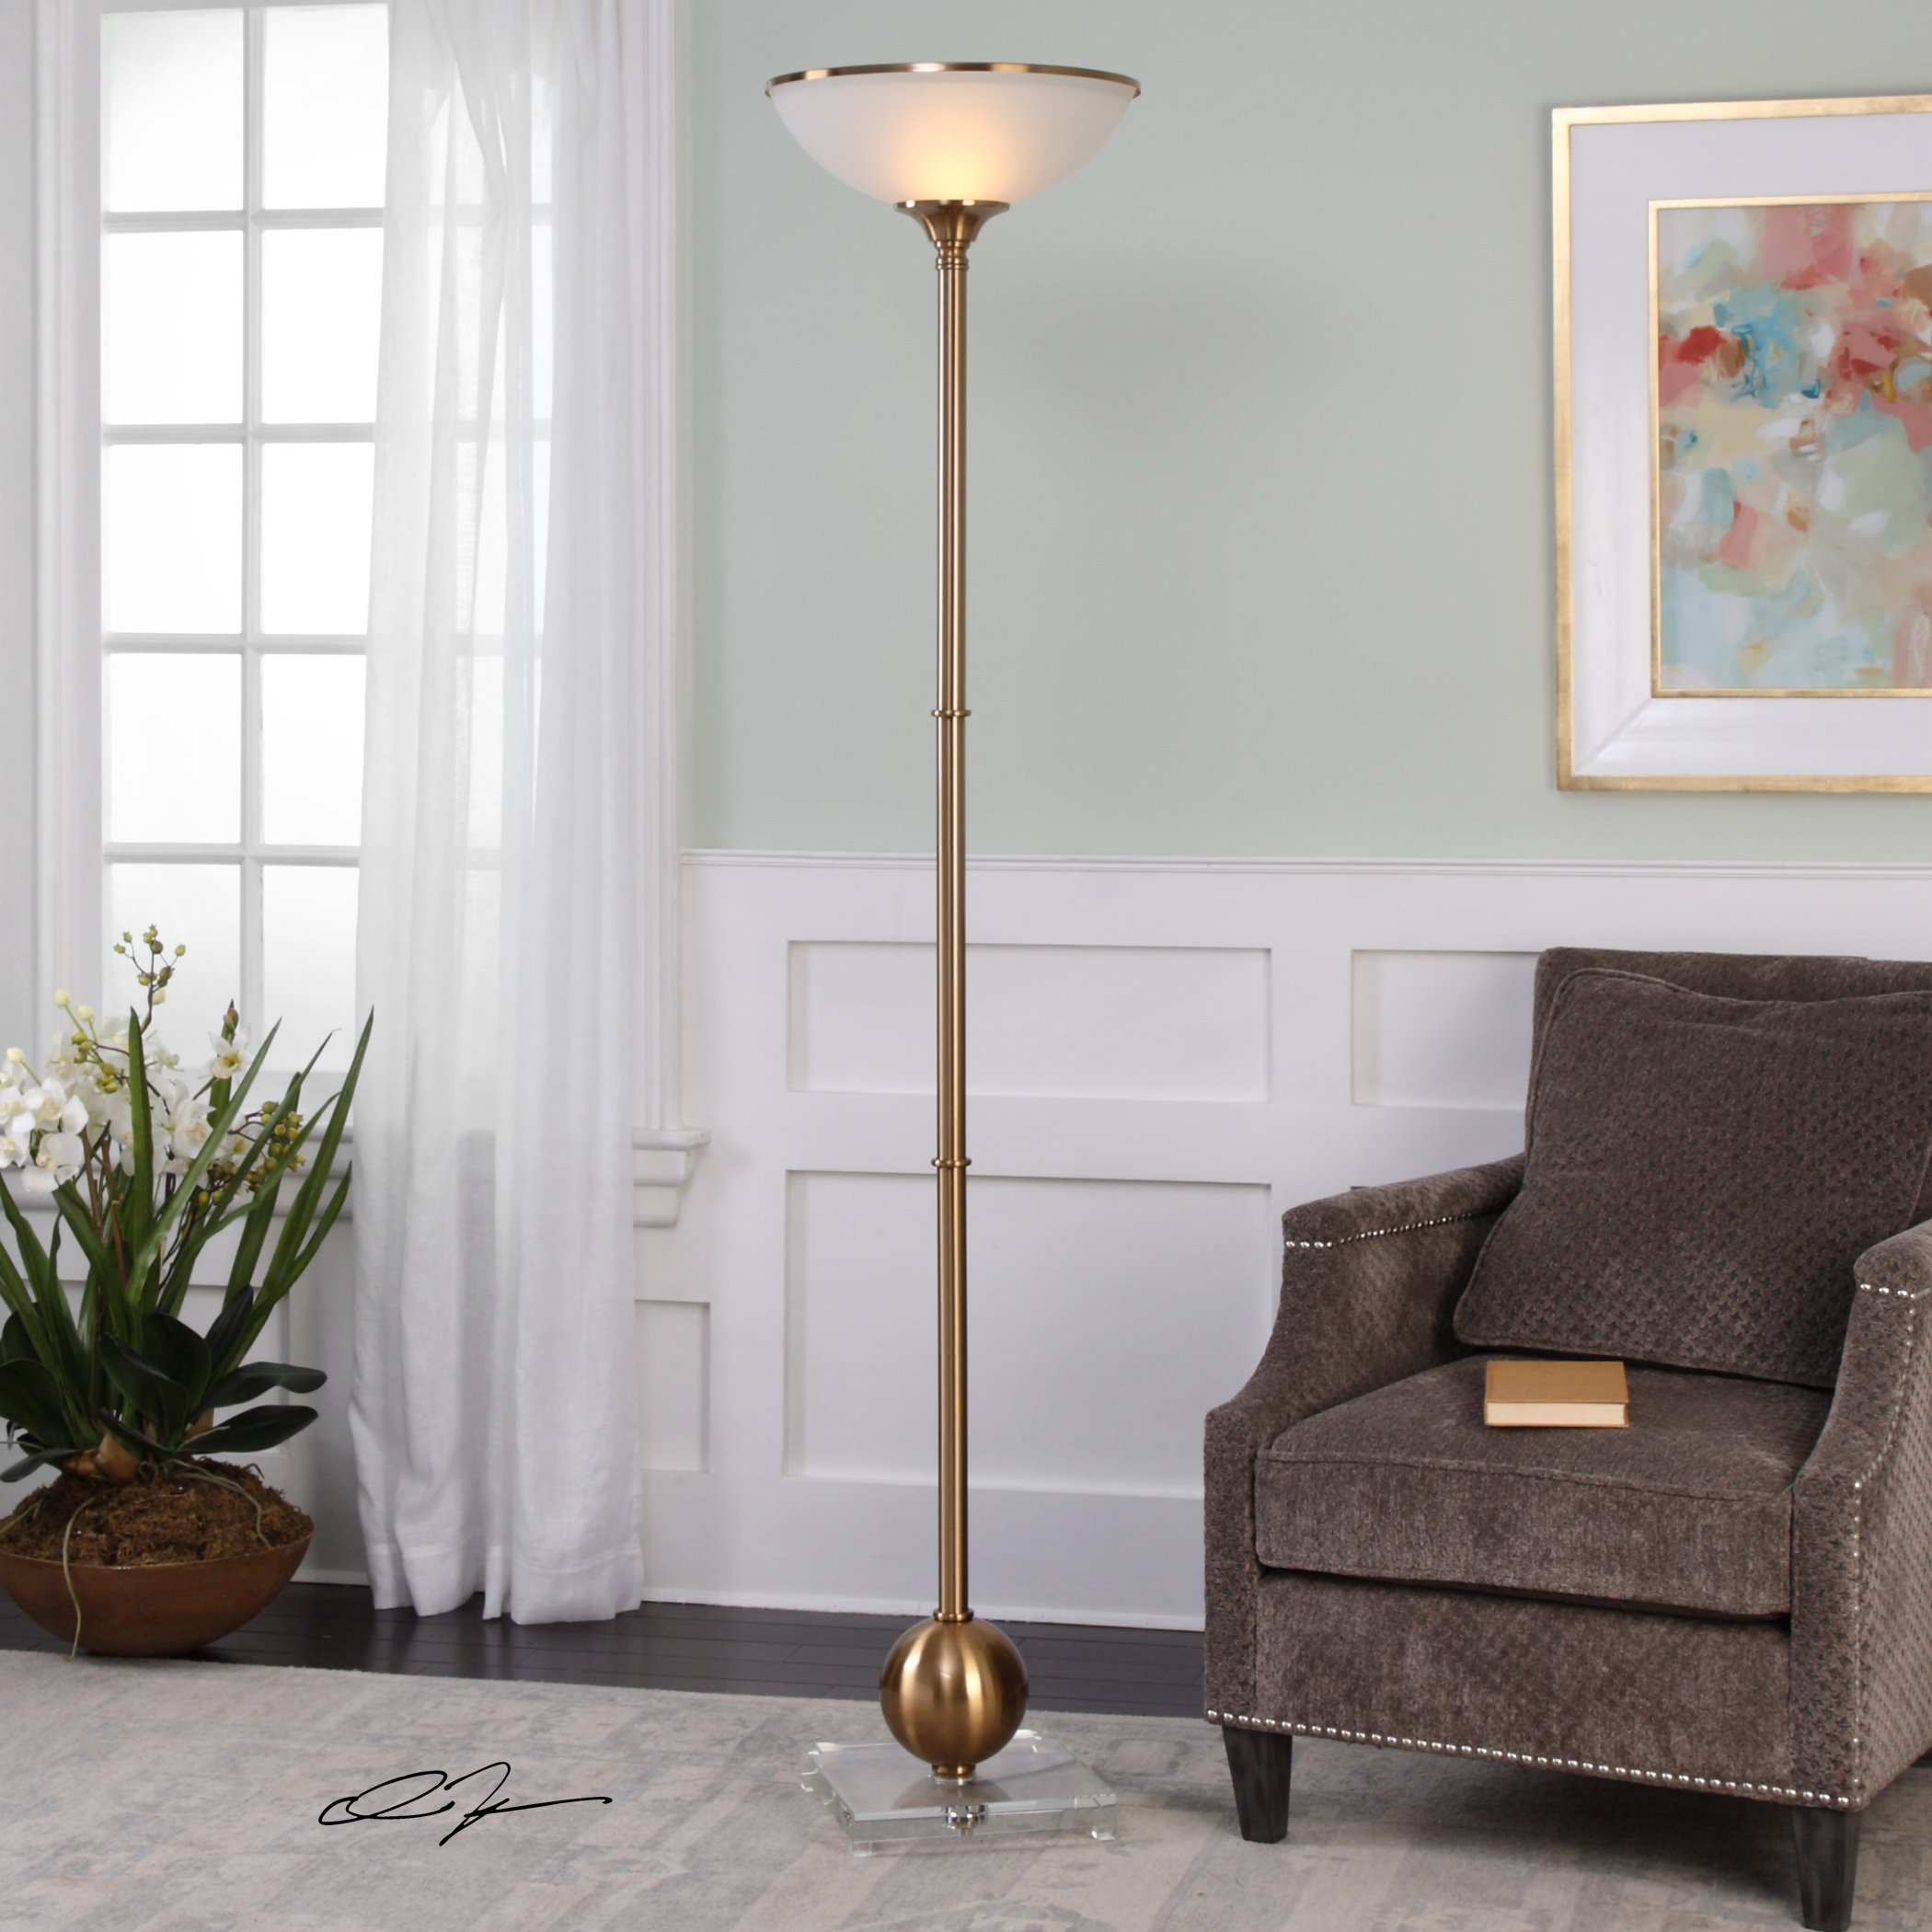 Luxe Brushed Brass Sphere Column Floor Lamp | Frosted Glass Shade Uplight Gold by My Swanky Home (Image #2)